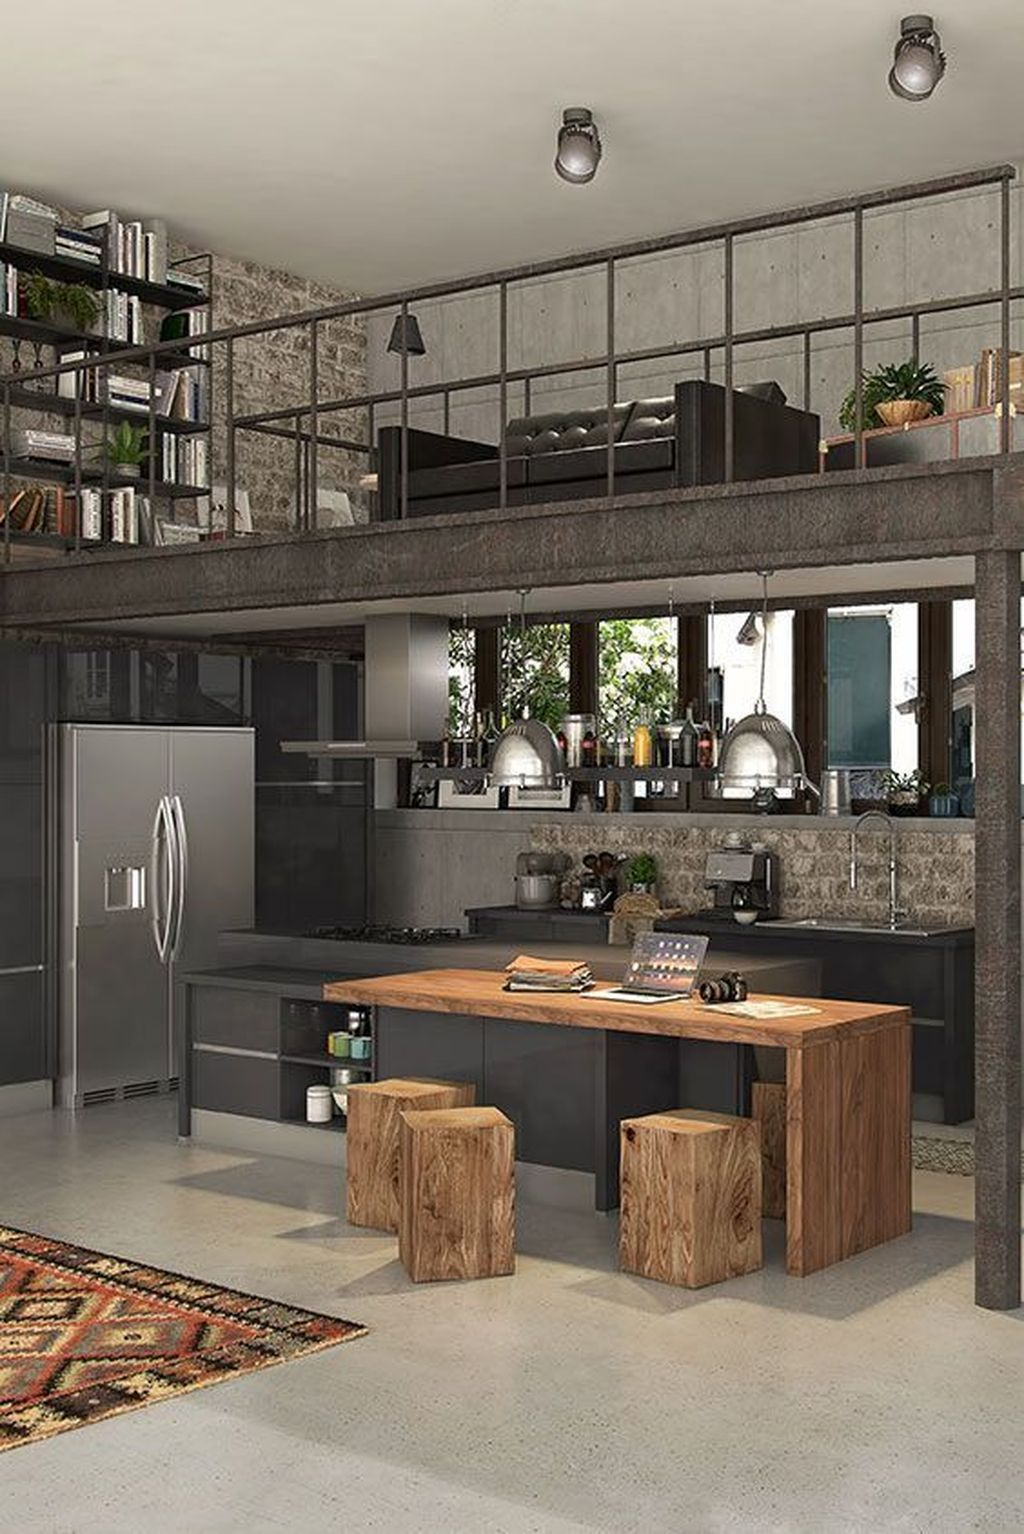 32 The Best Industrial Kitchen Design Ideas